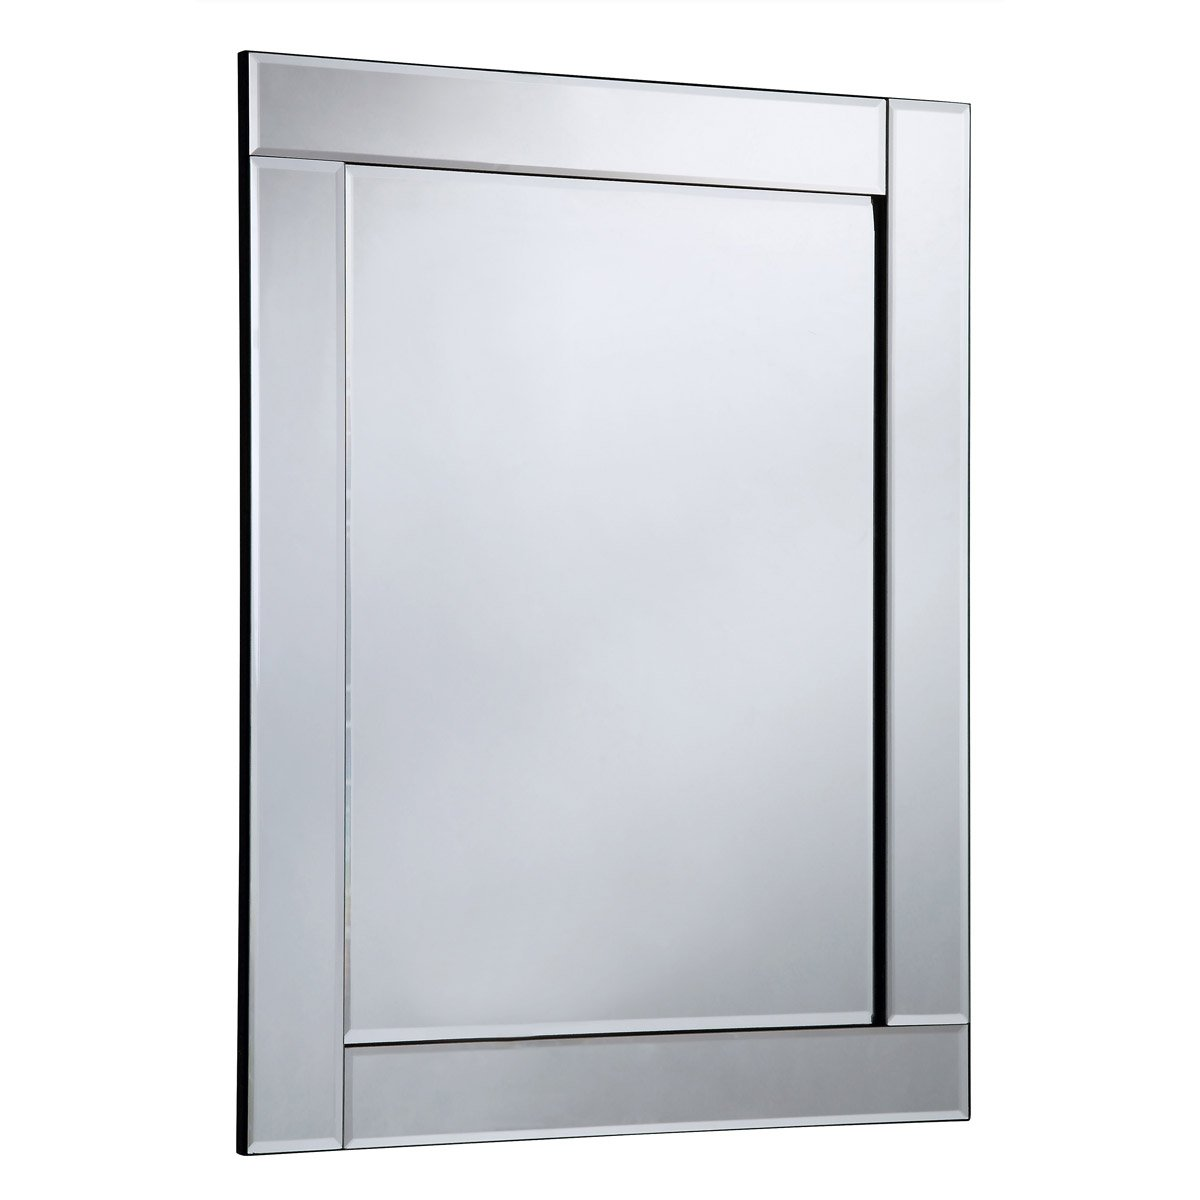 Modern 31.5 X 47.4 Contemporary Mirror - Clear Finish (Mr-3047) Mirror